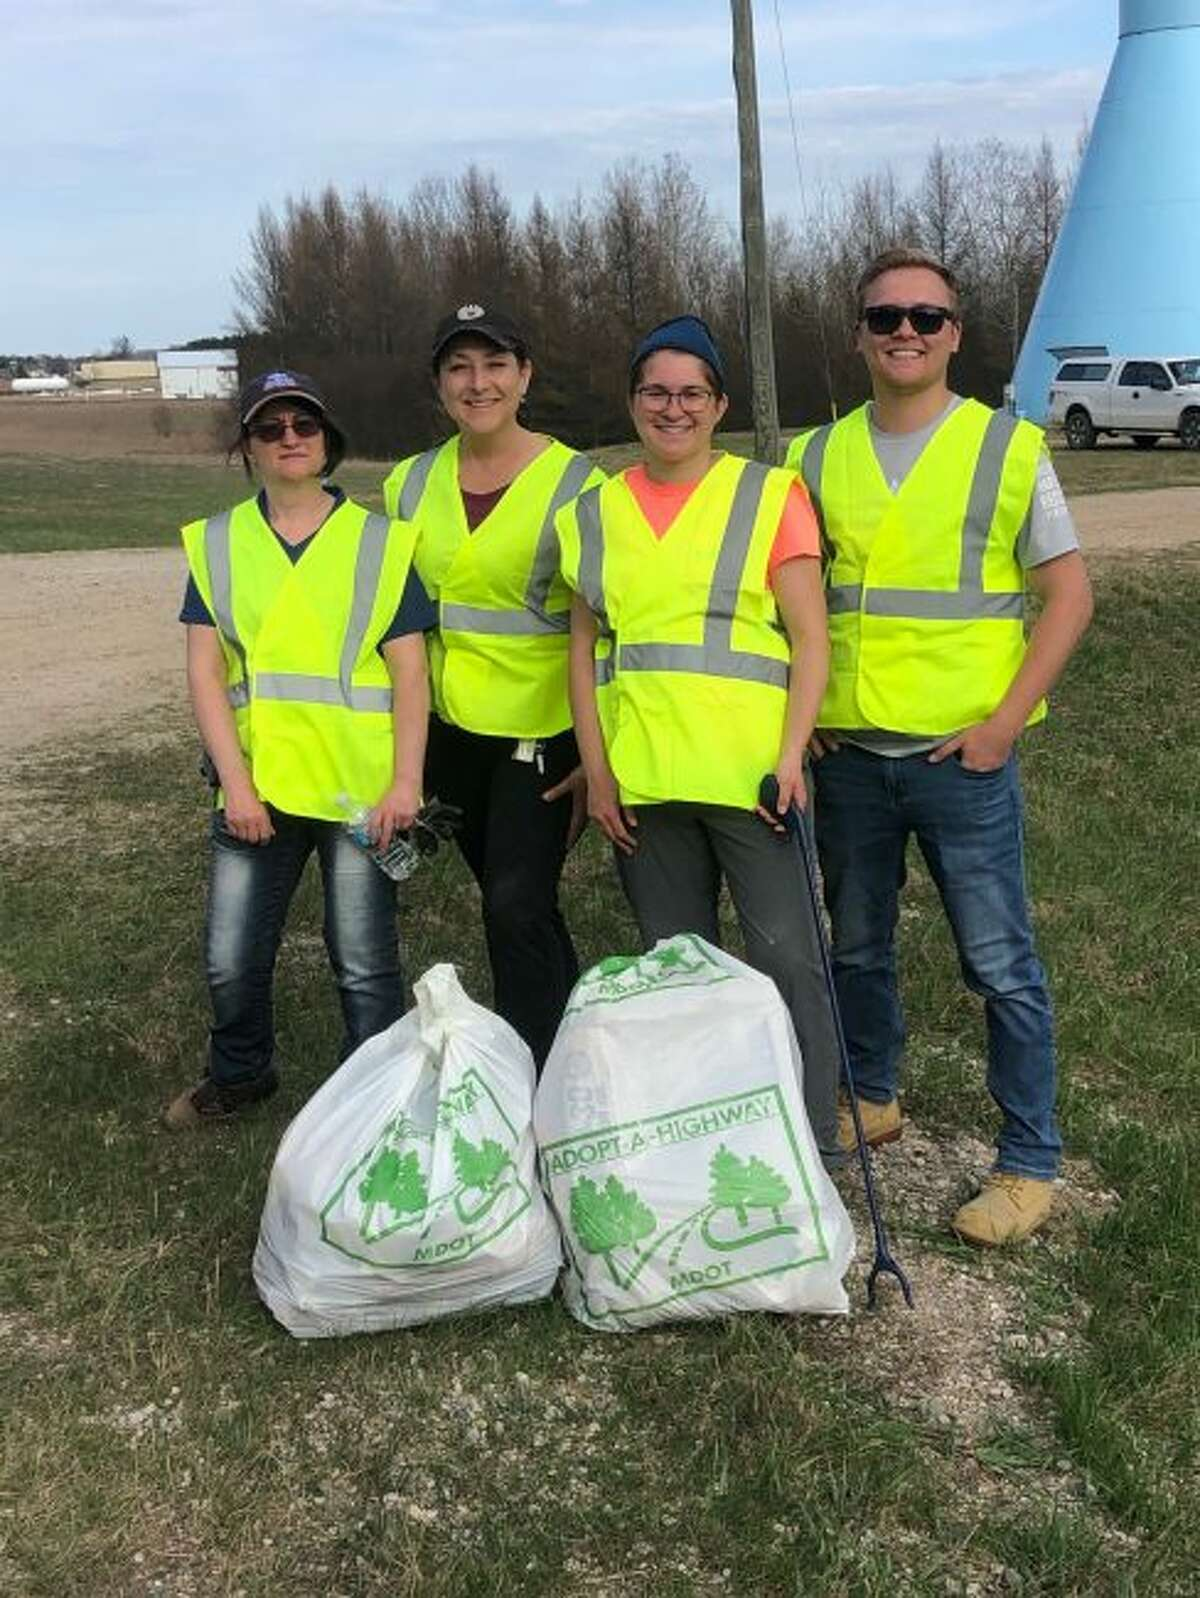 Representatives from Ice Mountain take to the streets along U.S. 10 in Evart on Monday for the Earth Day Adopt-A-Highway event. (Courtesy photo)